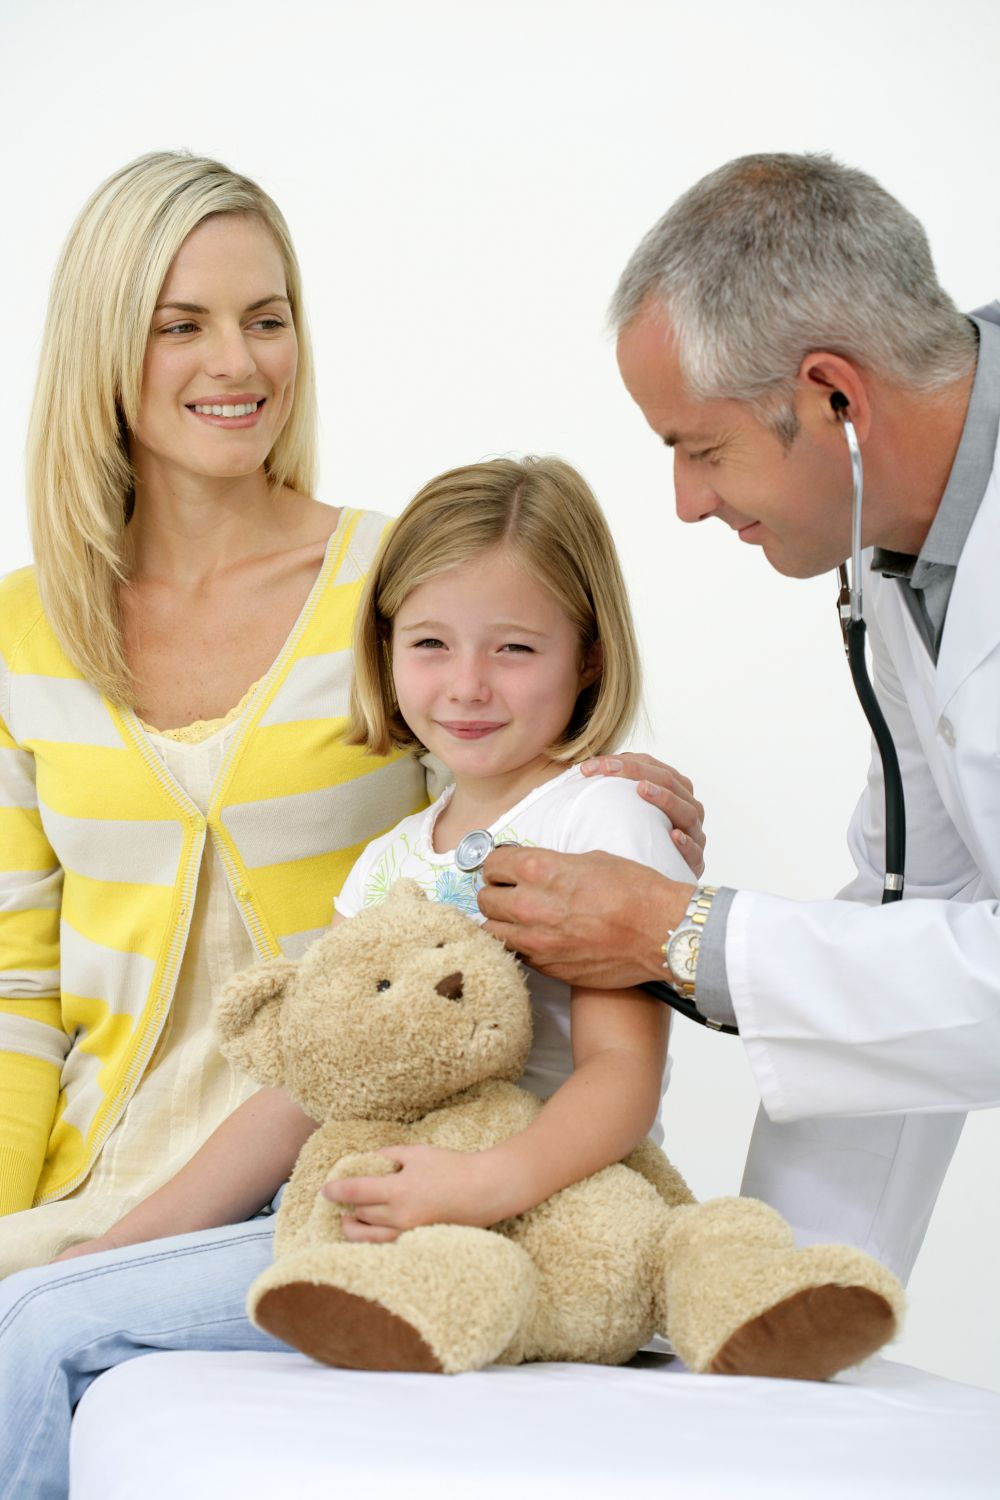 Child care at medical practice in Dothan, AL